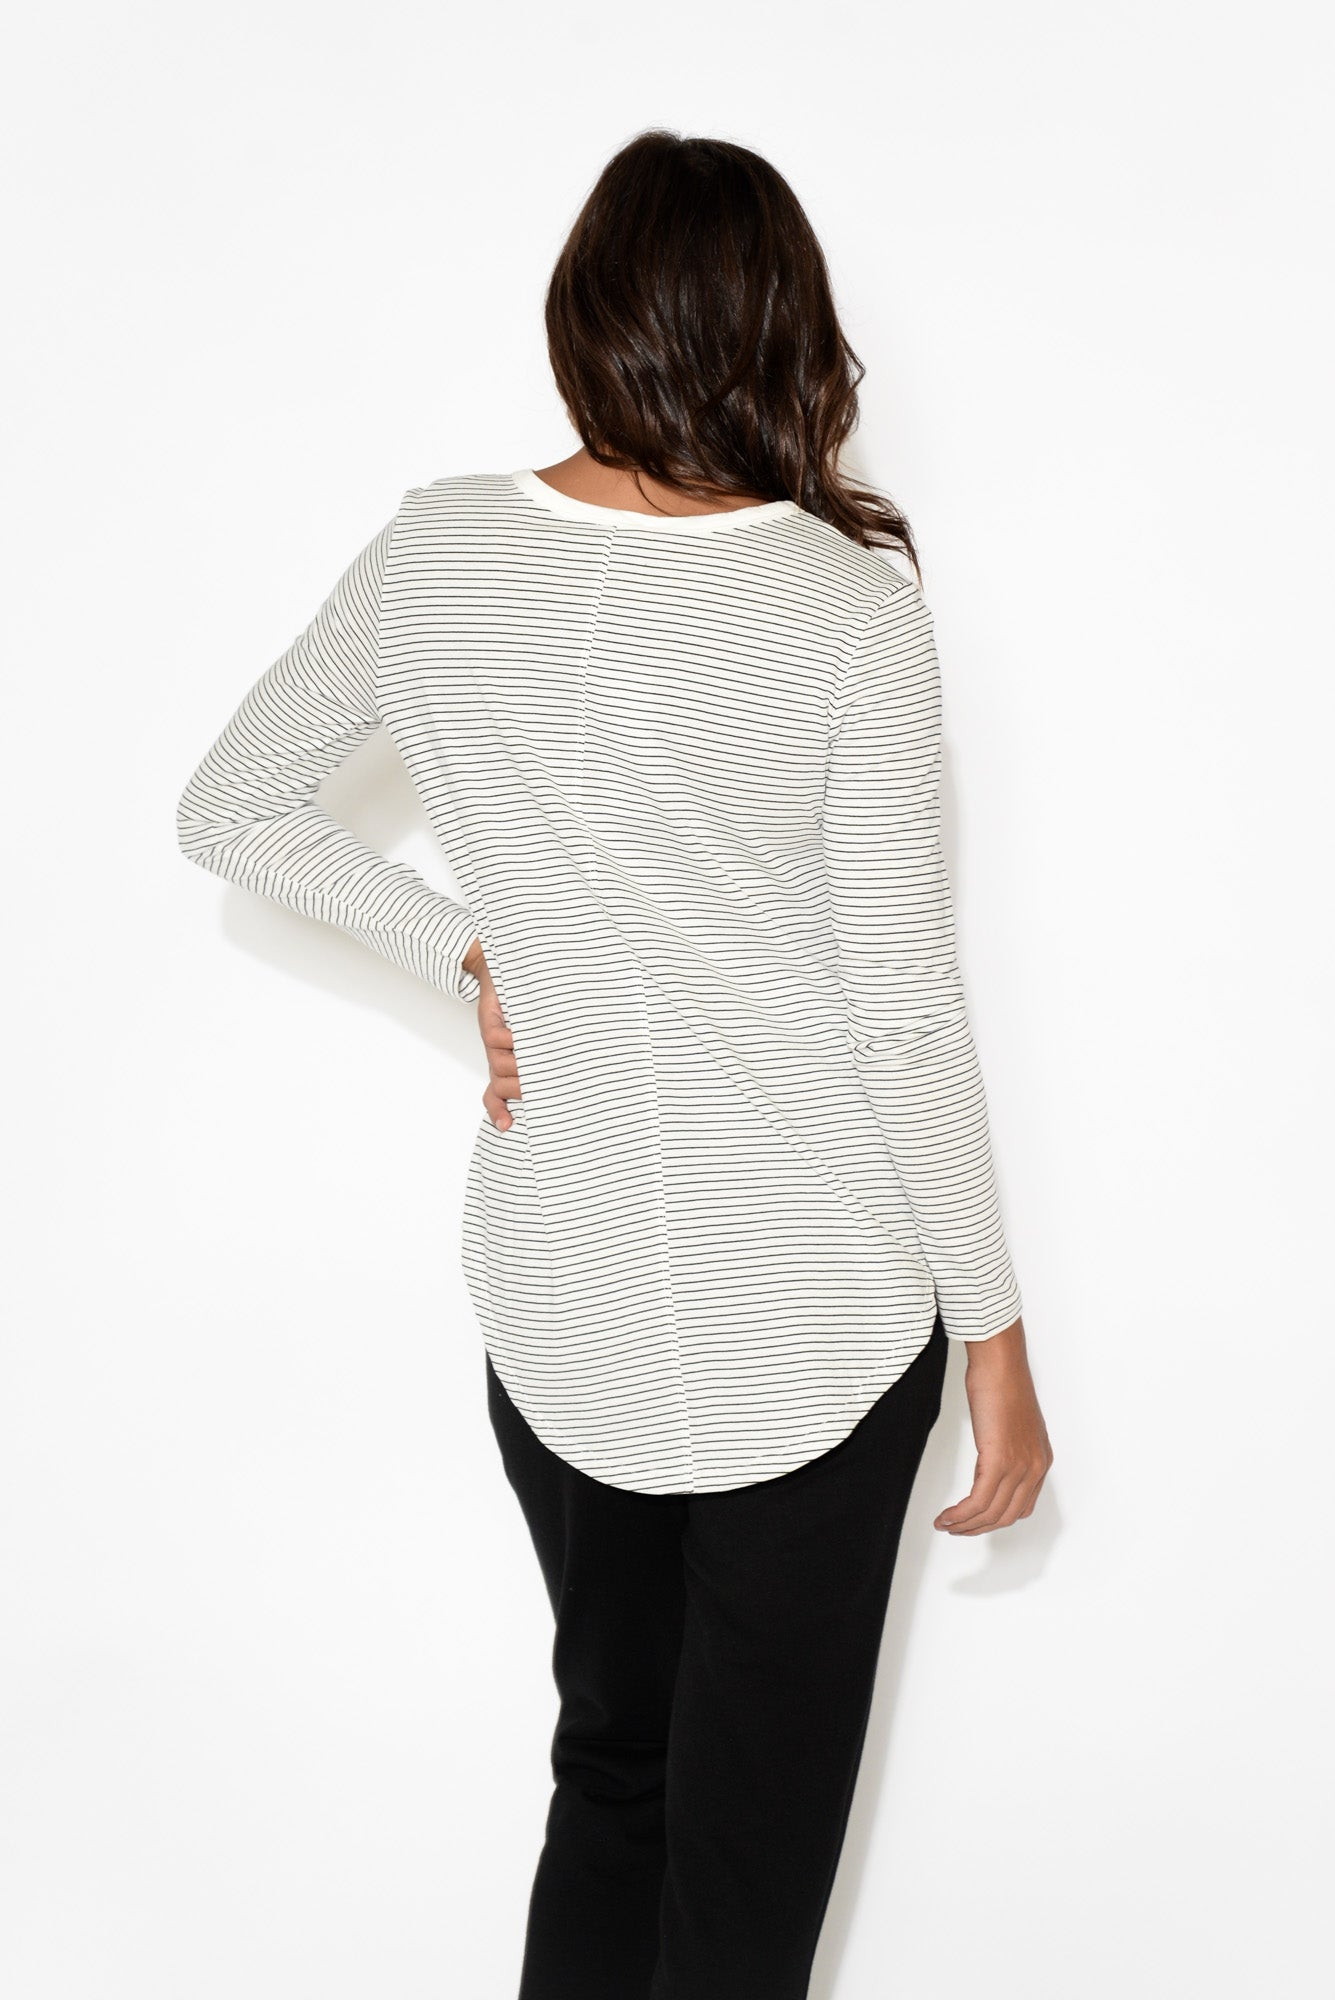 Megan Black Stripe Long Sleeve Cotton Top